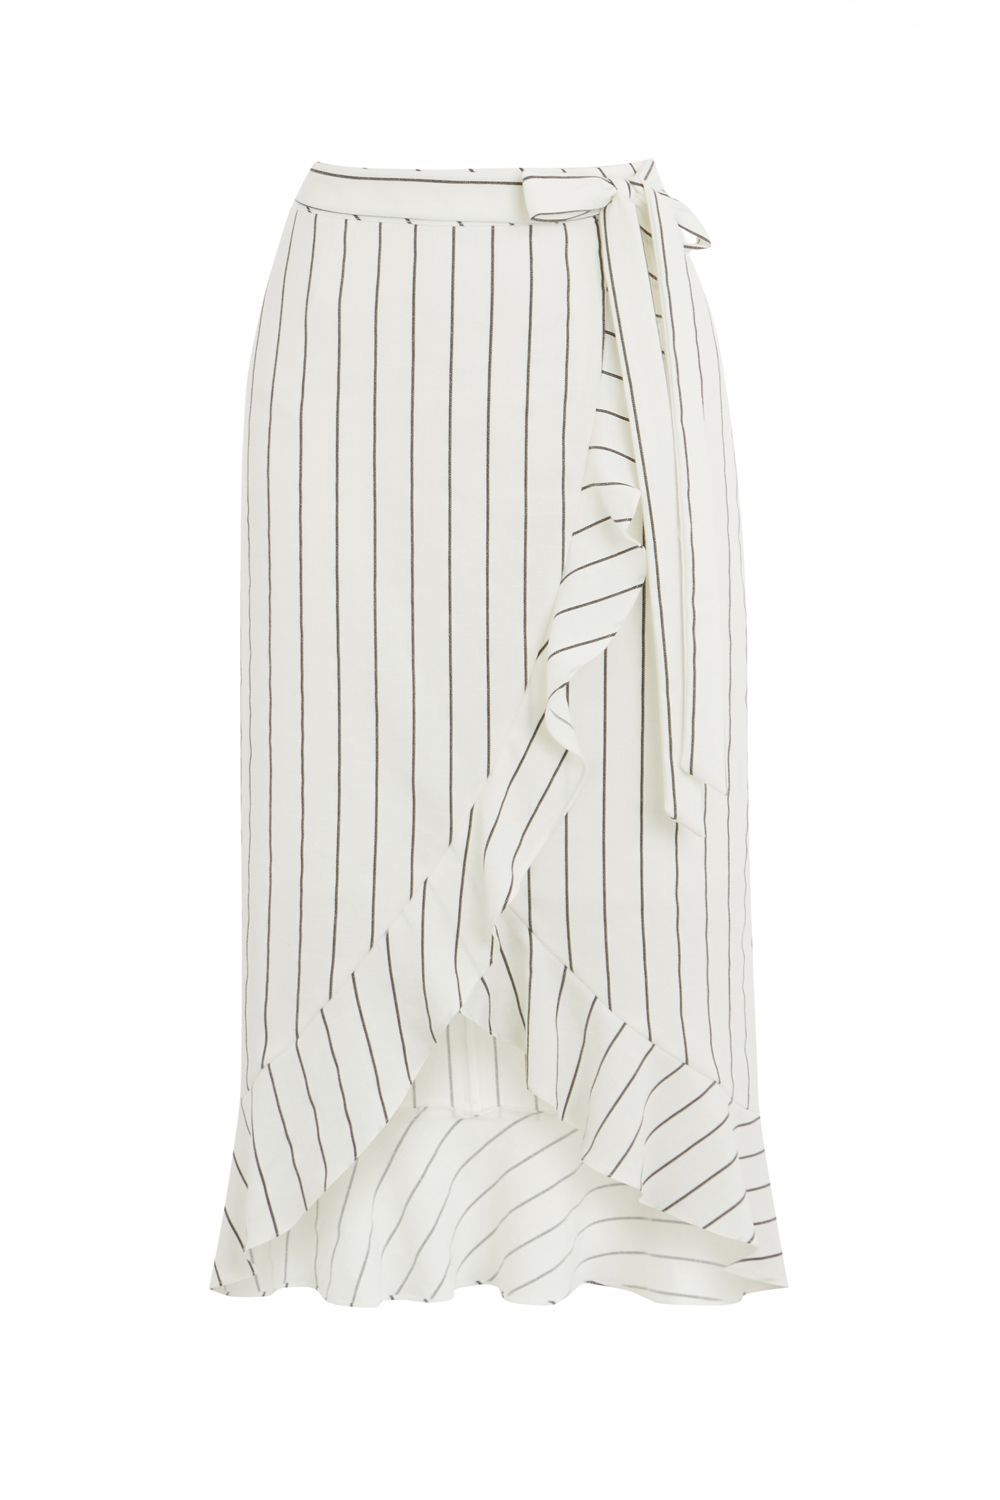 Linen Look Pinstripe Skirt by Oasis